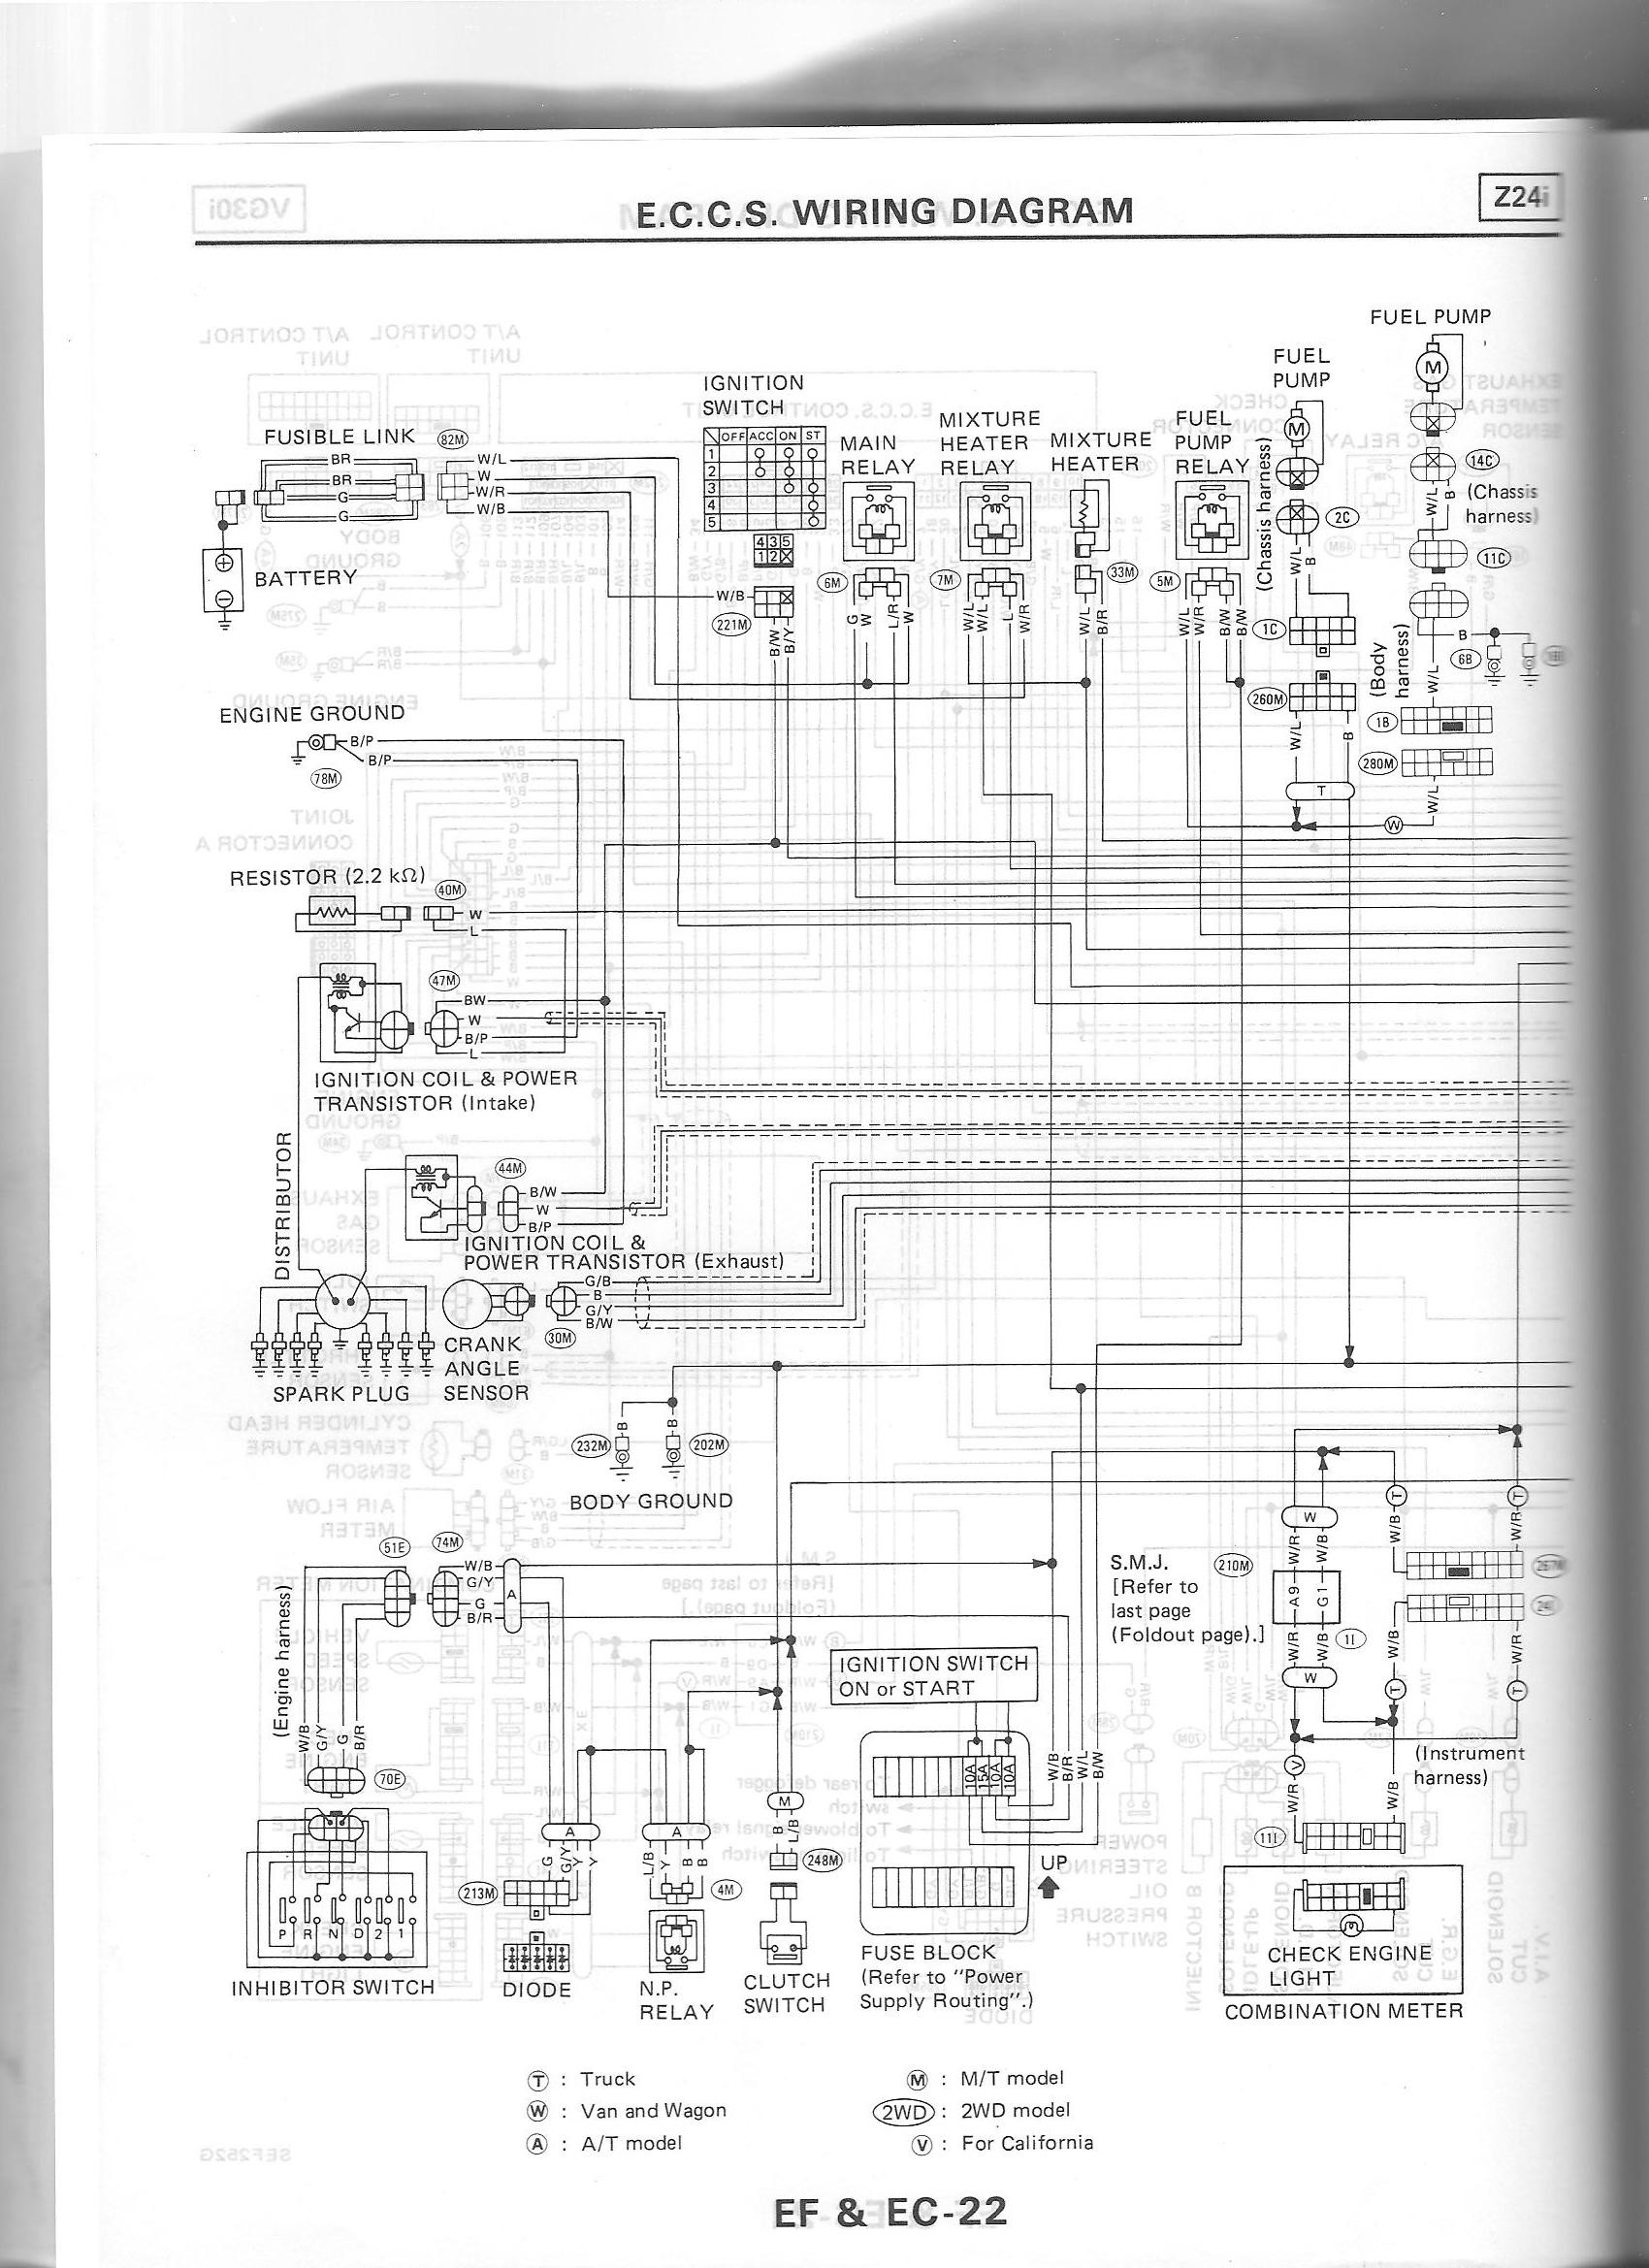 2012 nissan sentra wiring diagram wiring diagram2007 nissan sentra wiring diagram wiring schematic diagram2007 nissan altima fuse box diagram best wiring library